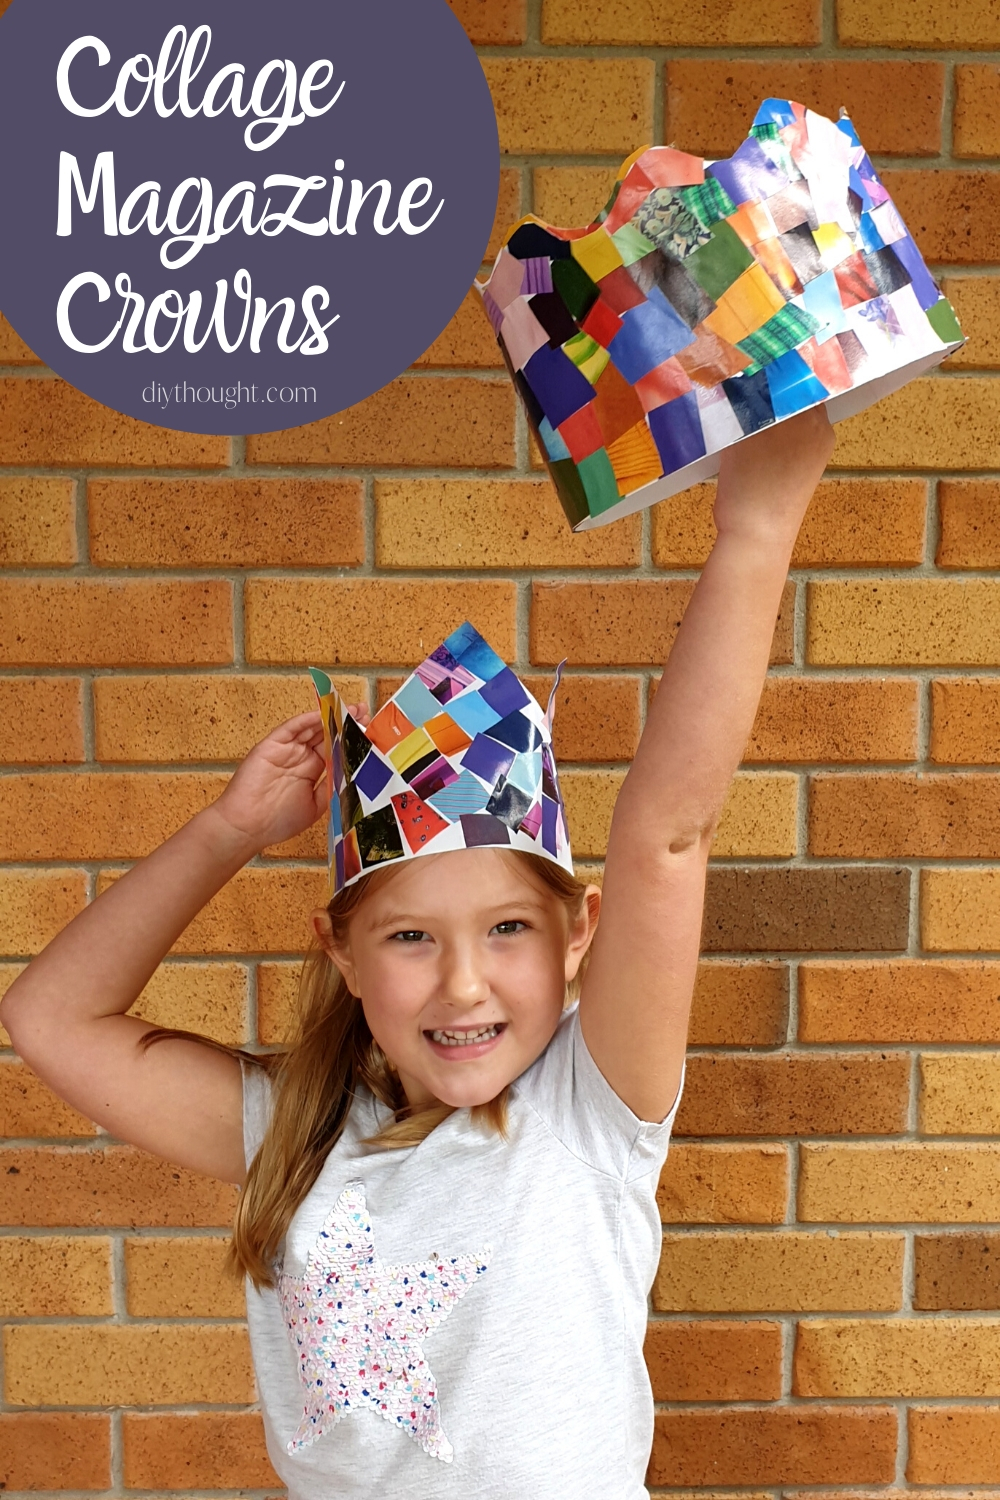 Collage magazine Crowns DIY recycled craft